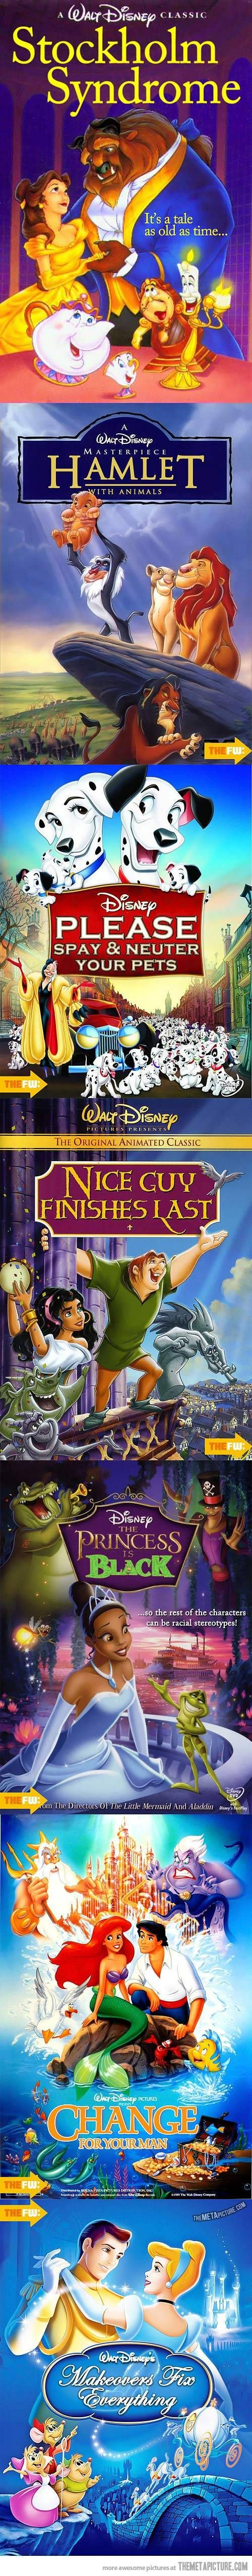 What If Disney titles where really honest?